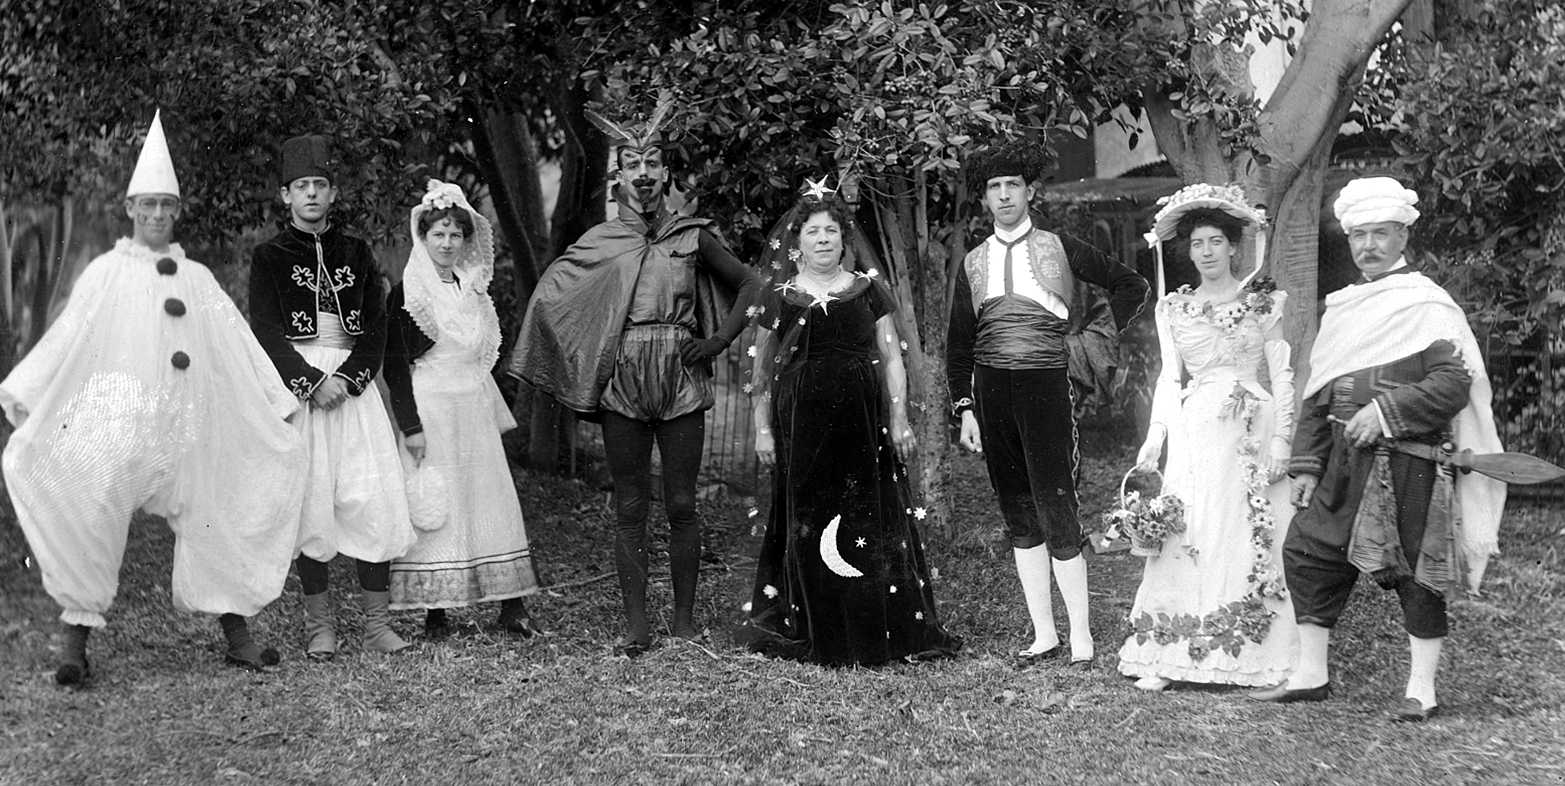 Dressed for a play, c.1900 - we have no idea what or precisely when